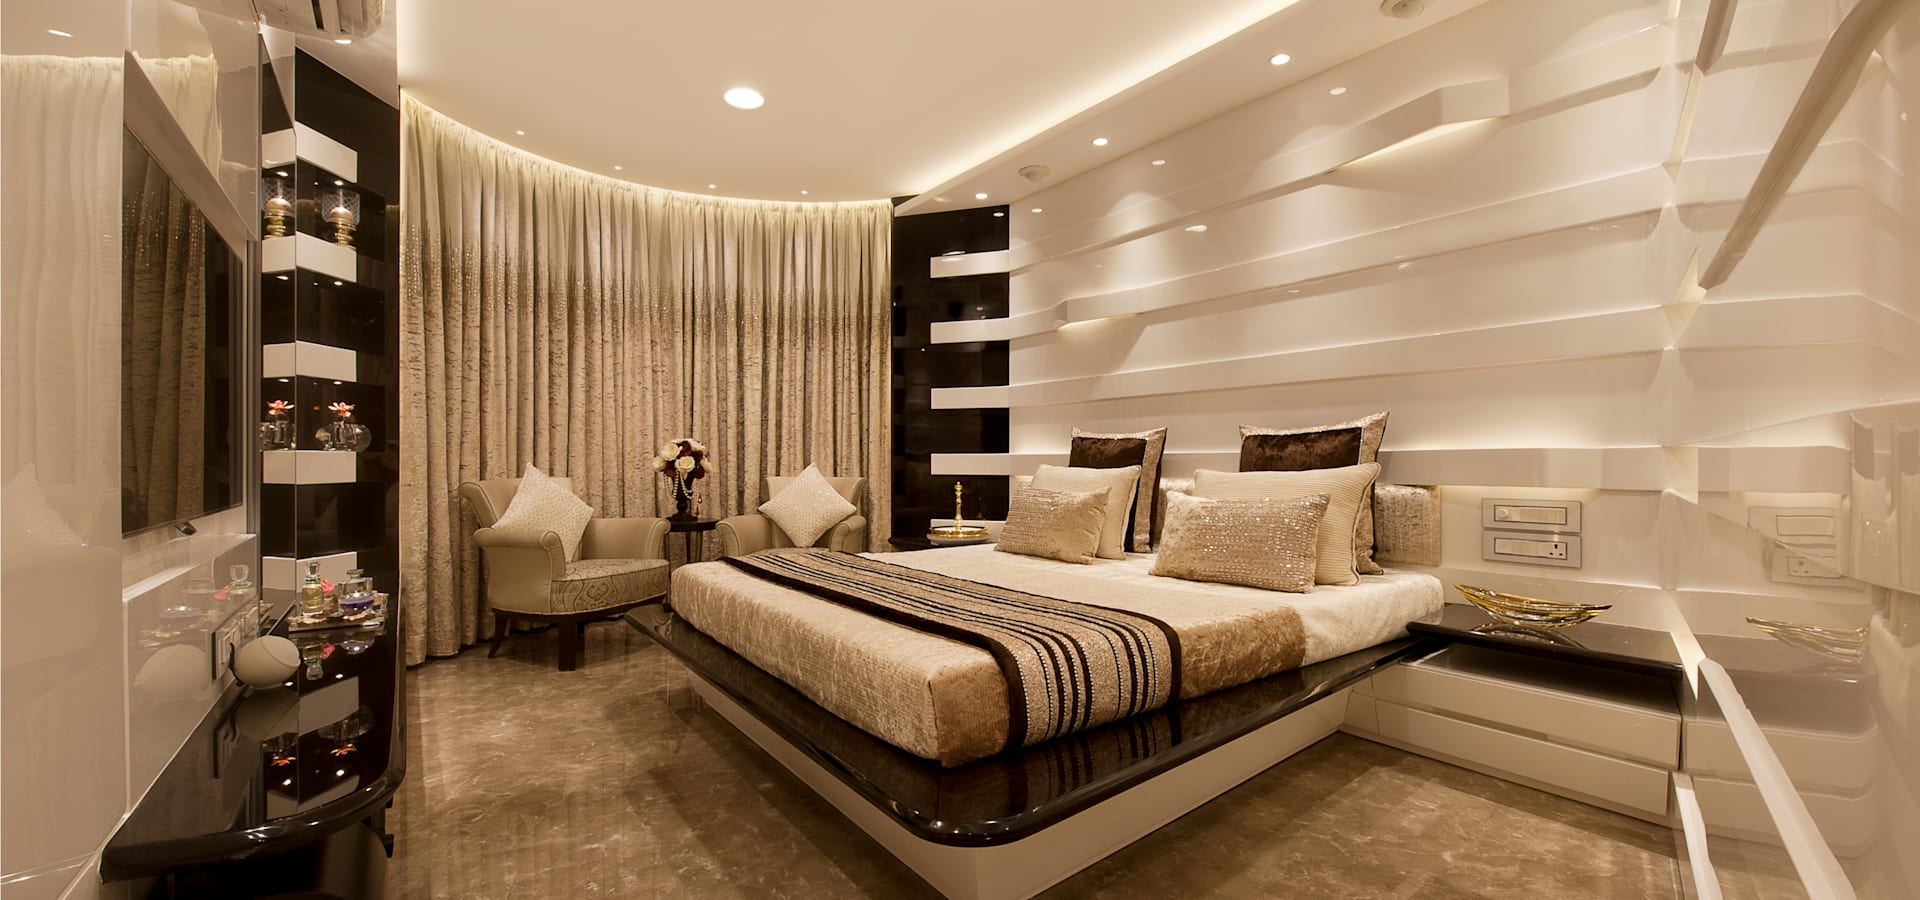 Bridal Room Mumbai By Sda Designs Homify